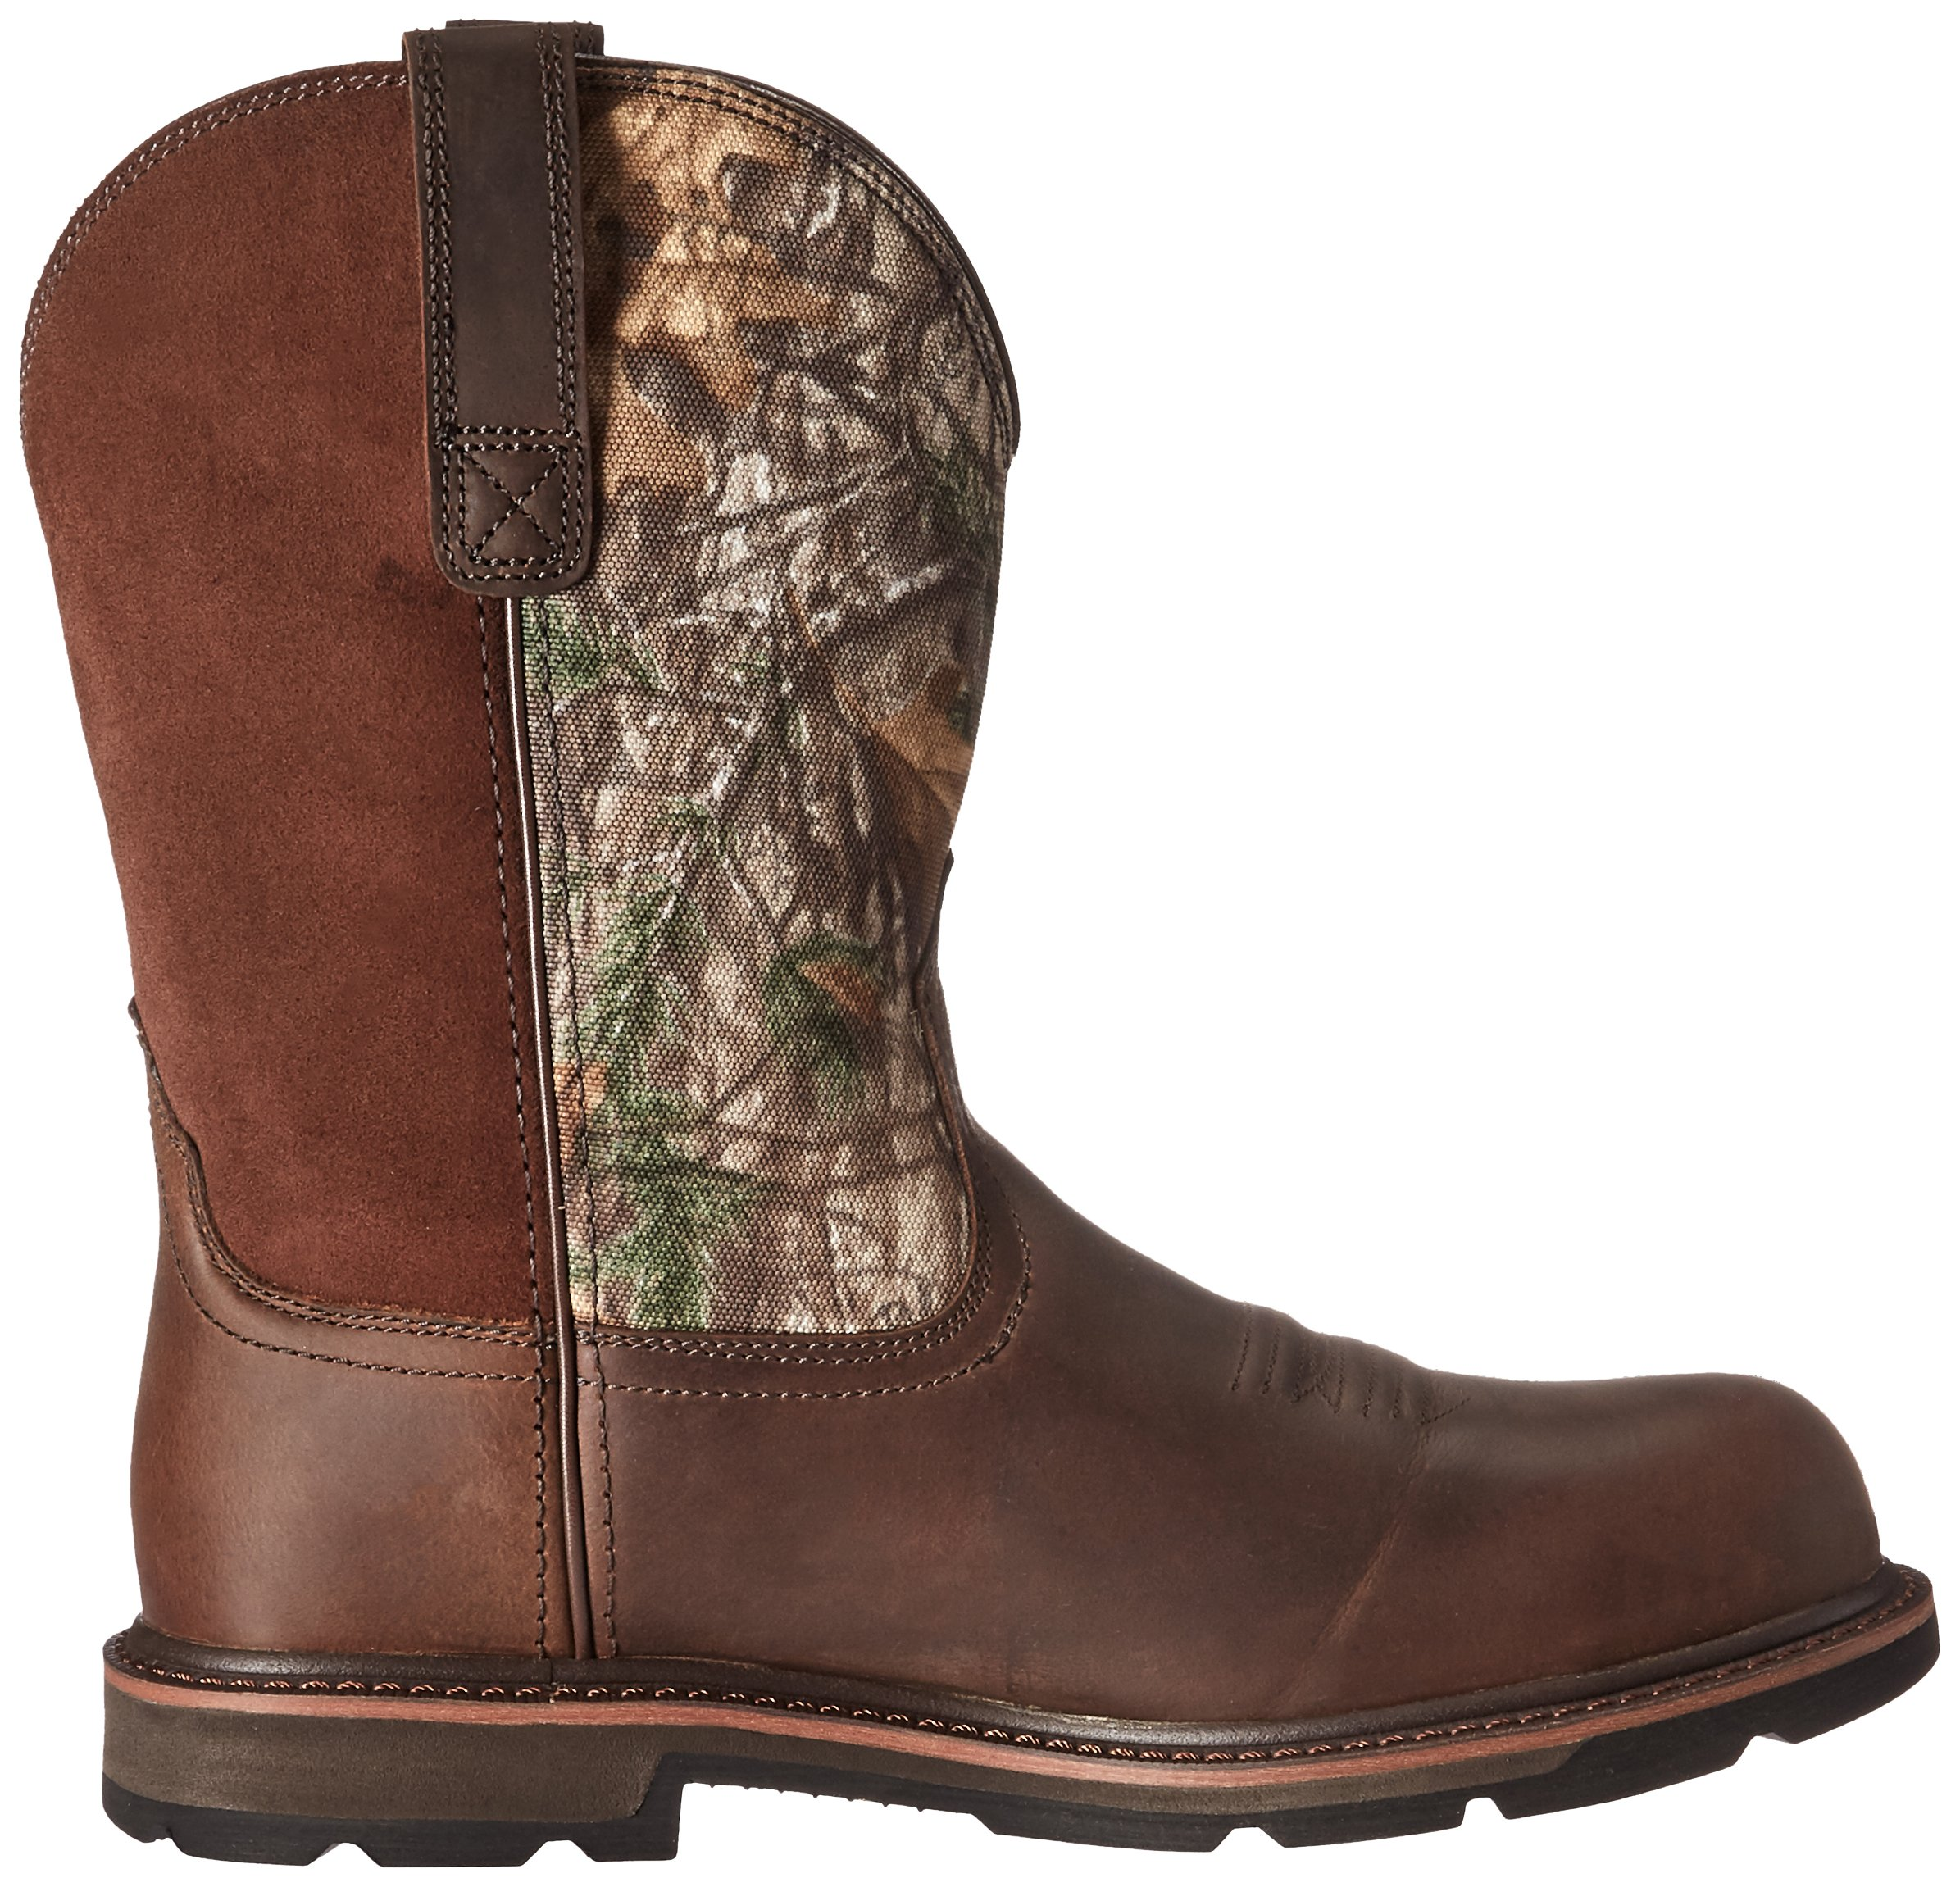 Ariat Work Men's Groundbreaker Pull-On Steel Toe Work Boot, Brown/Real Tree Extra, 7 D US by Ariat (Image #7)